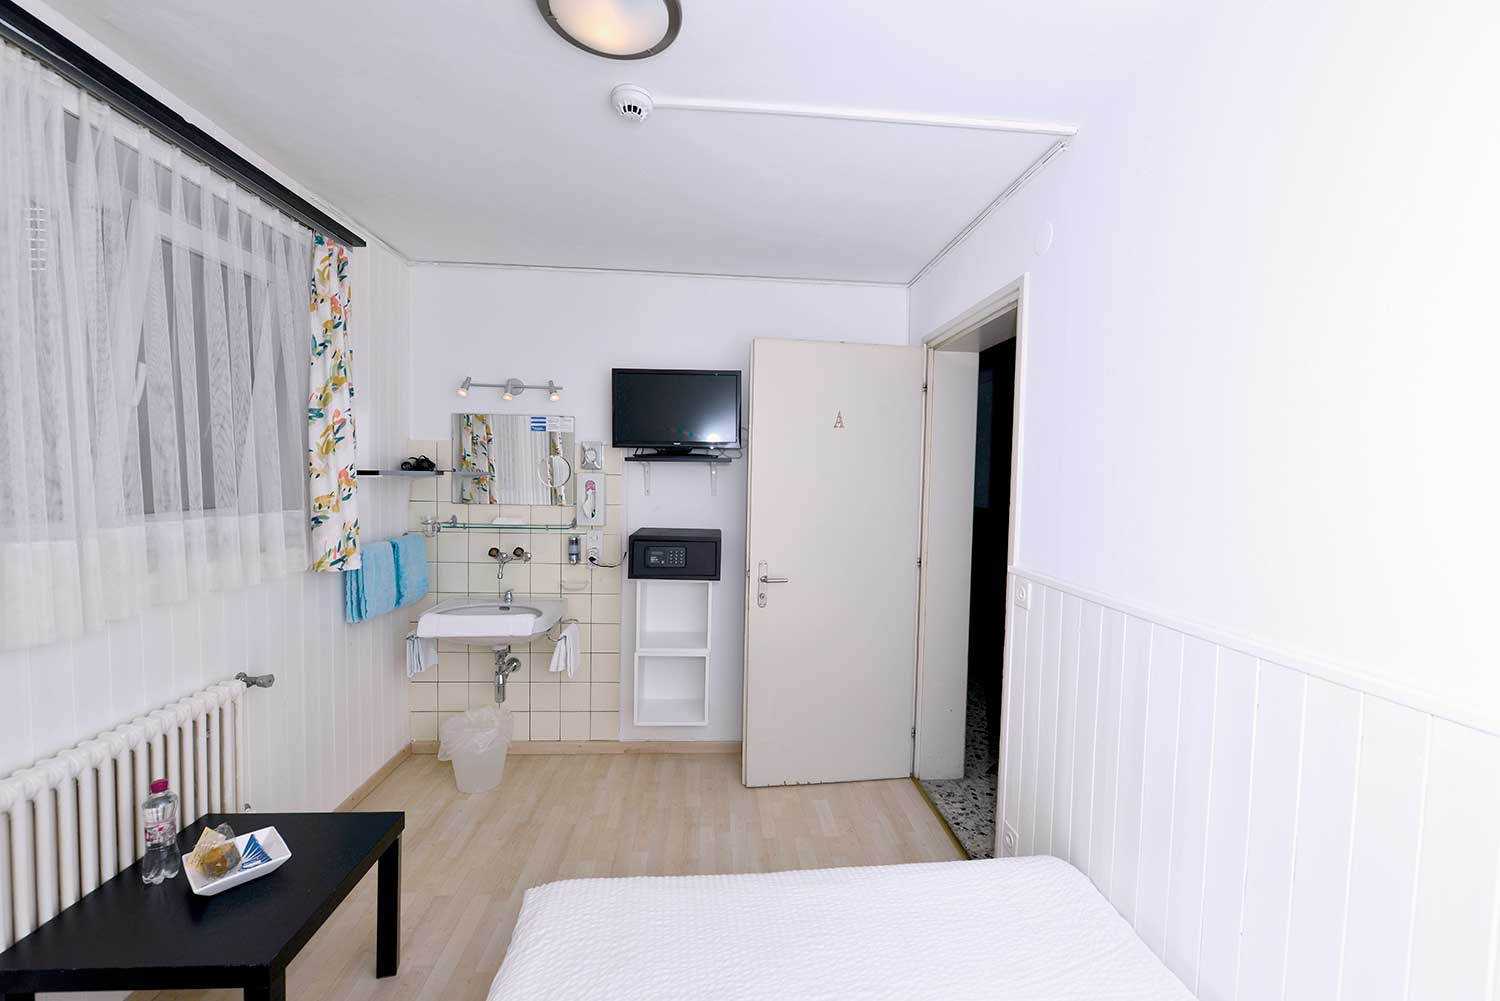 Very Simple Rooms Basement Floor With Shared Bathroom